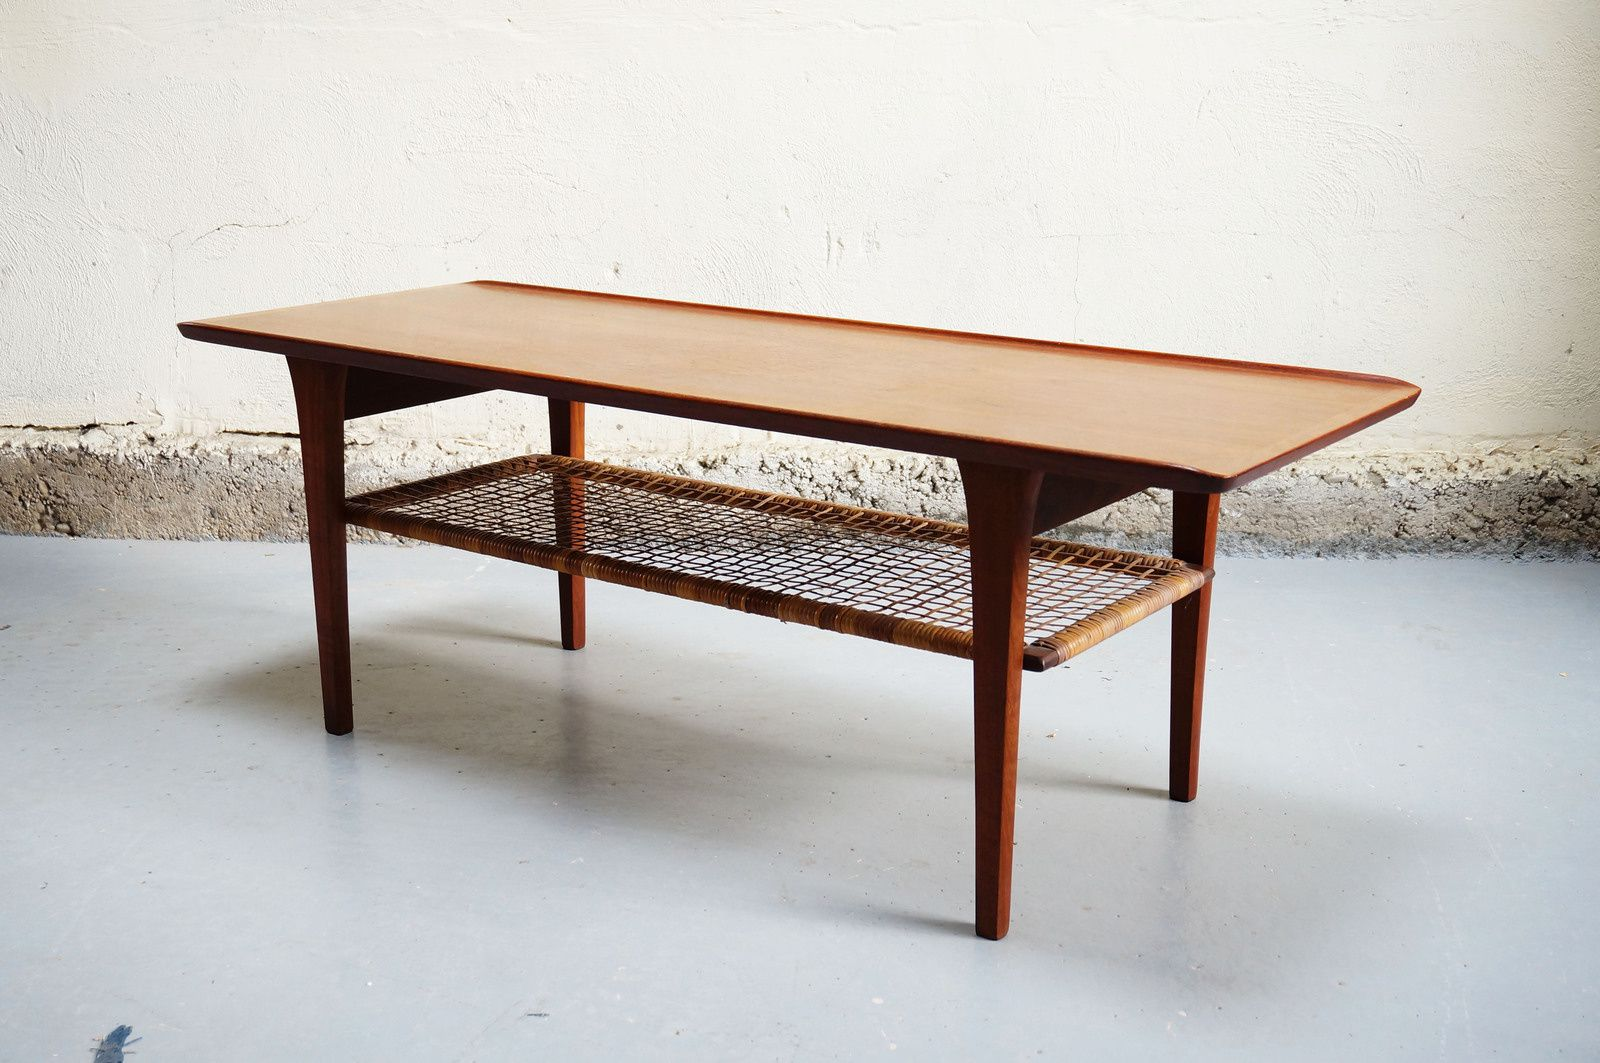 Table basse danoise scandinave teck mobelintarsia denmark - Table basse scandinave annee 50 ...